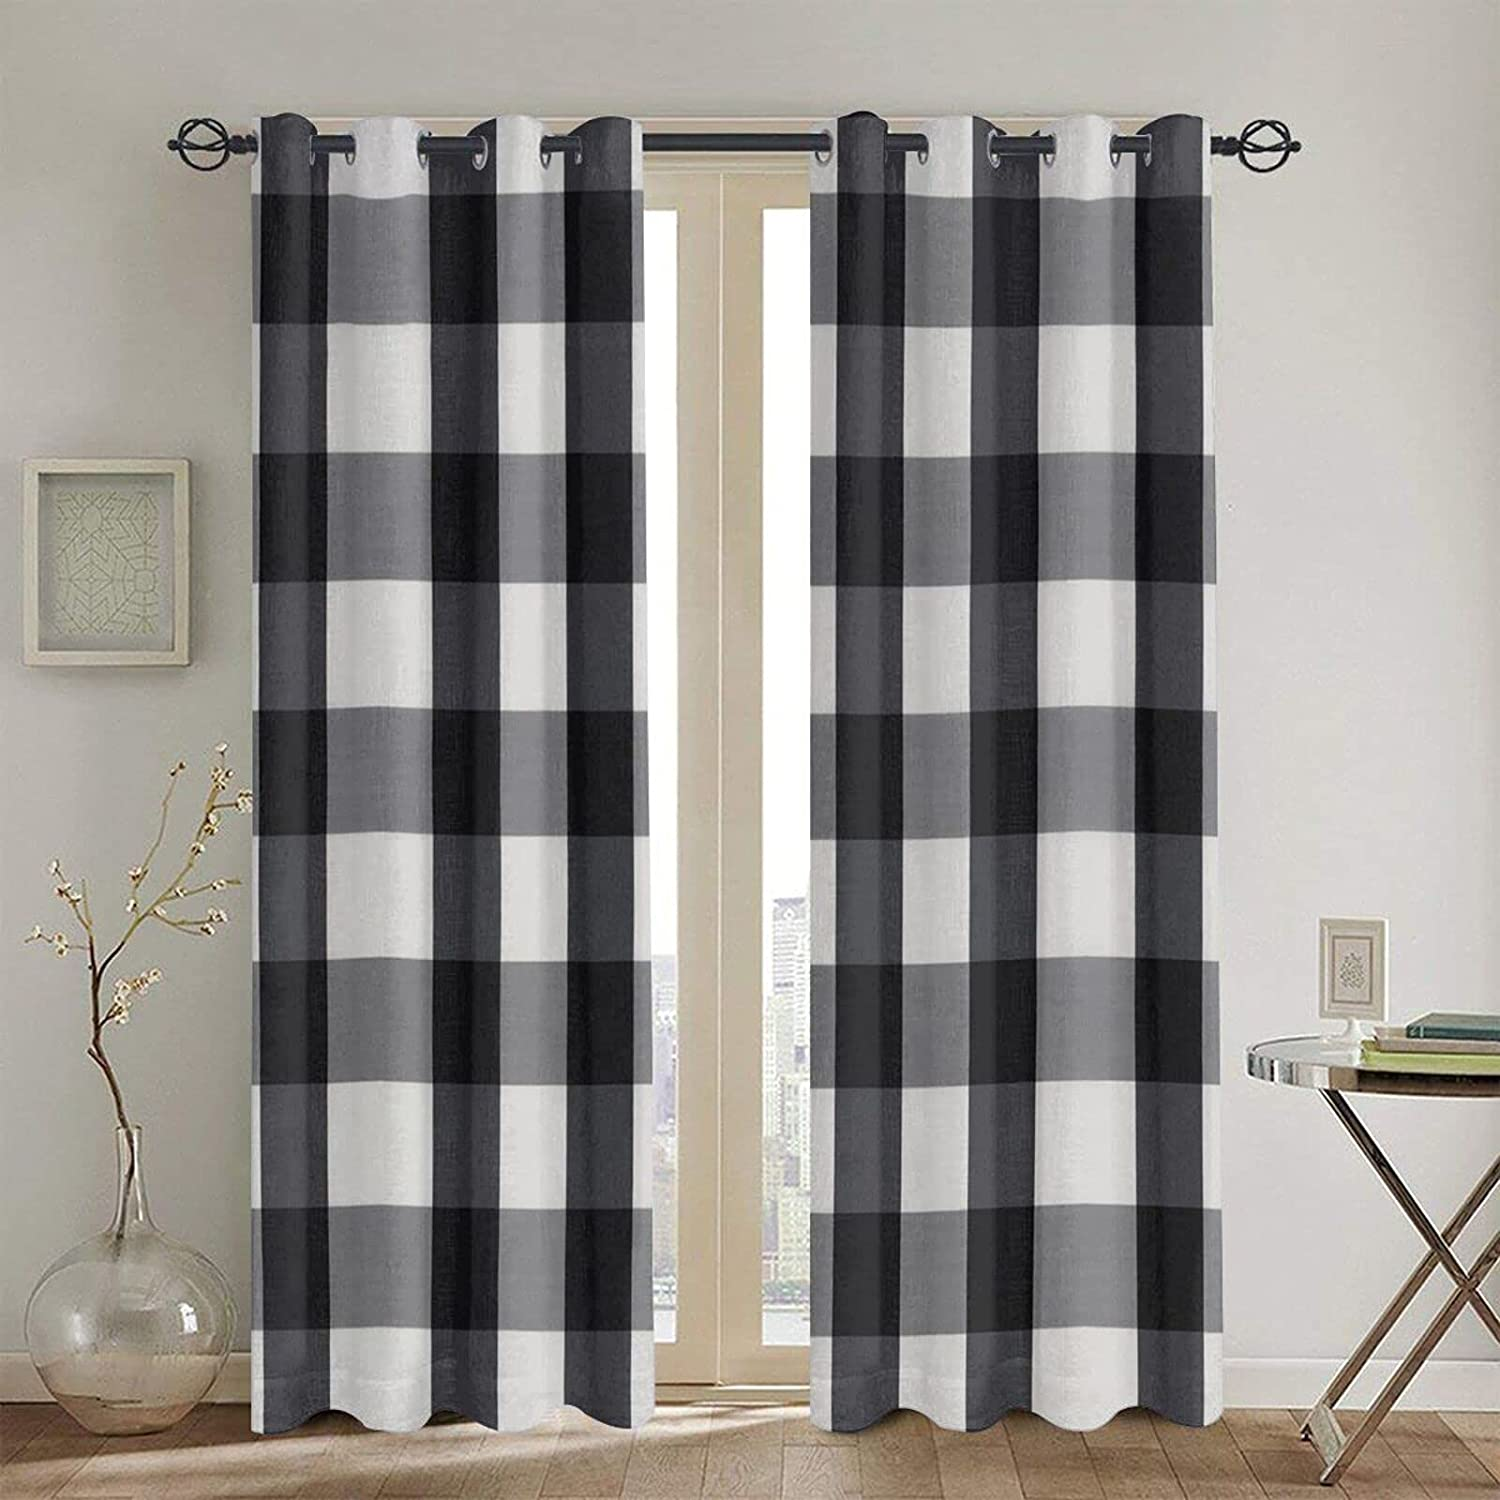 Popularity Black and White Plaid Printed Curtains Bedroom Max 64% OFF Blackout 52 for